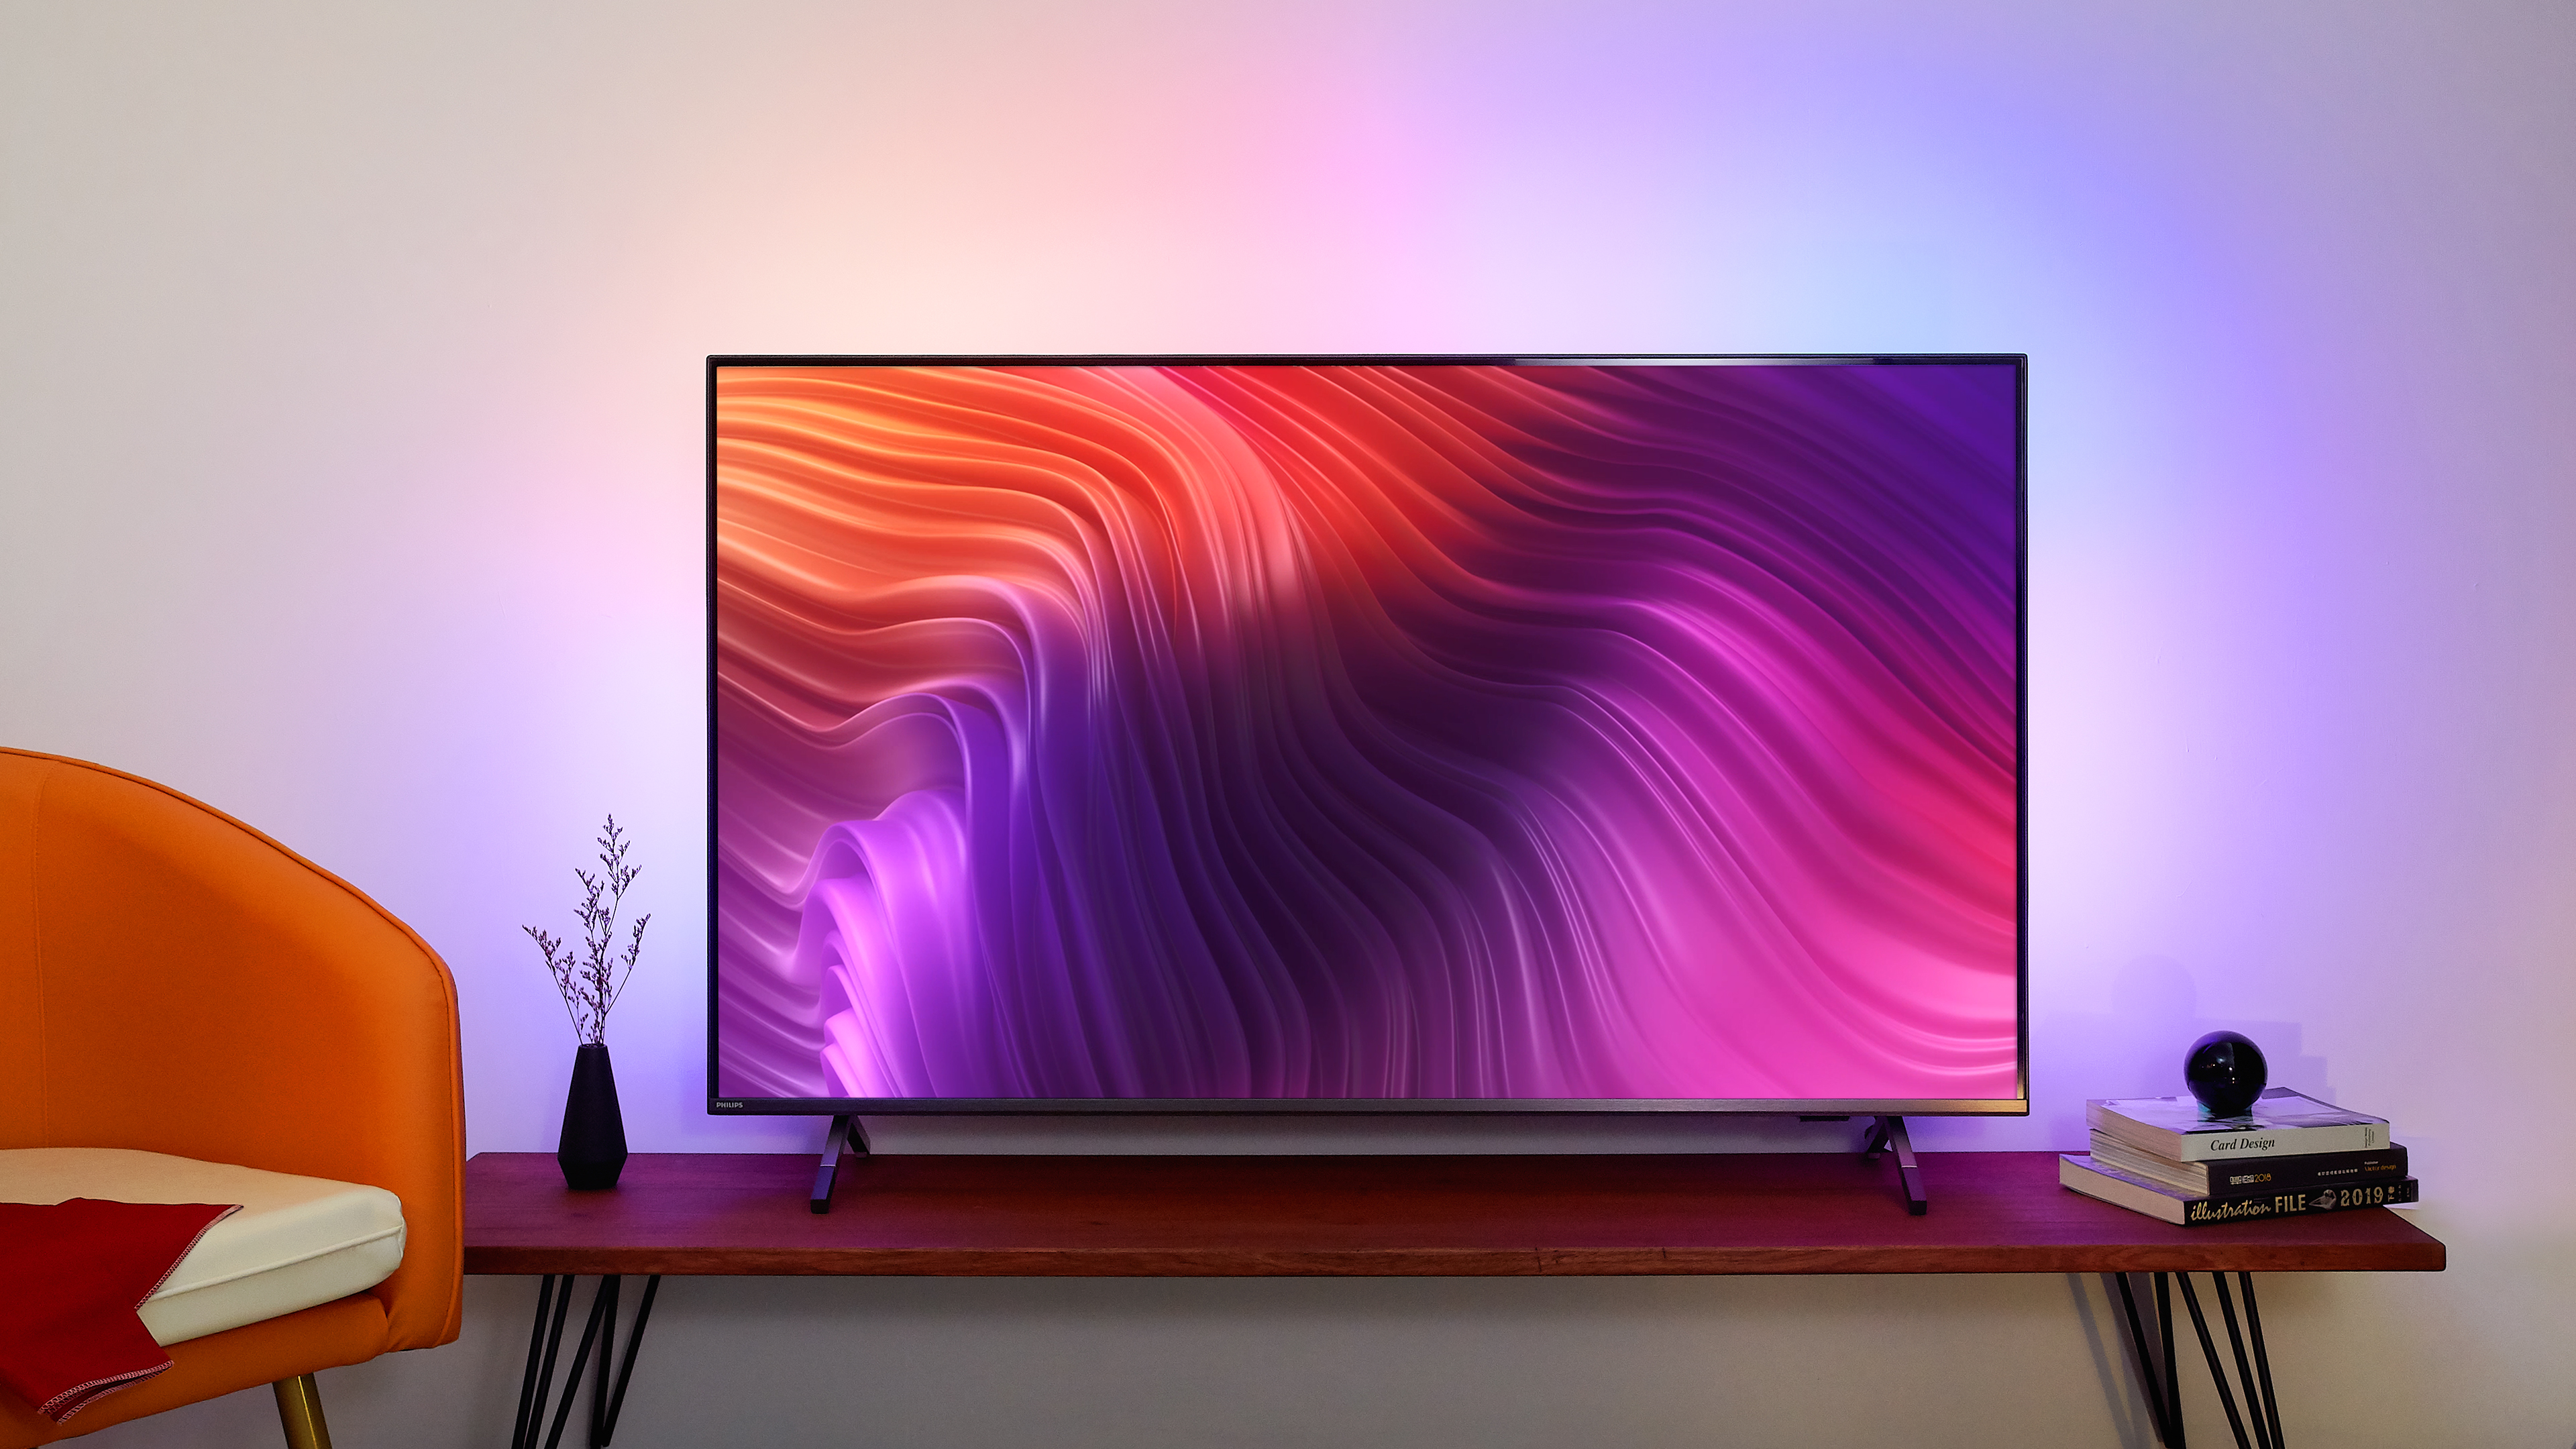 New 4K Philips 8500 Series TV for Taiwan Introduces Antibacterial Remote and Apple TV